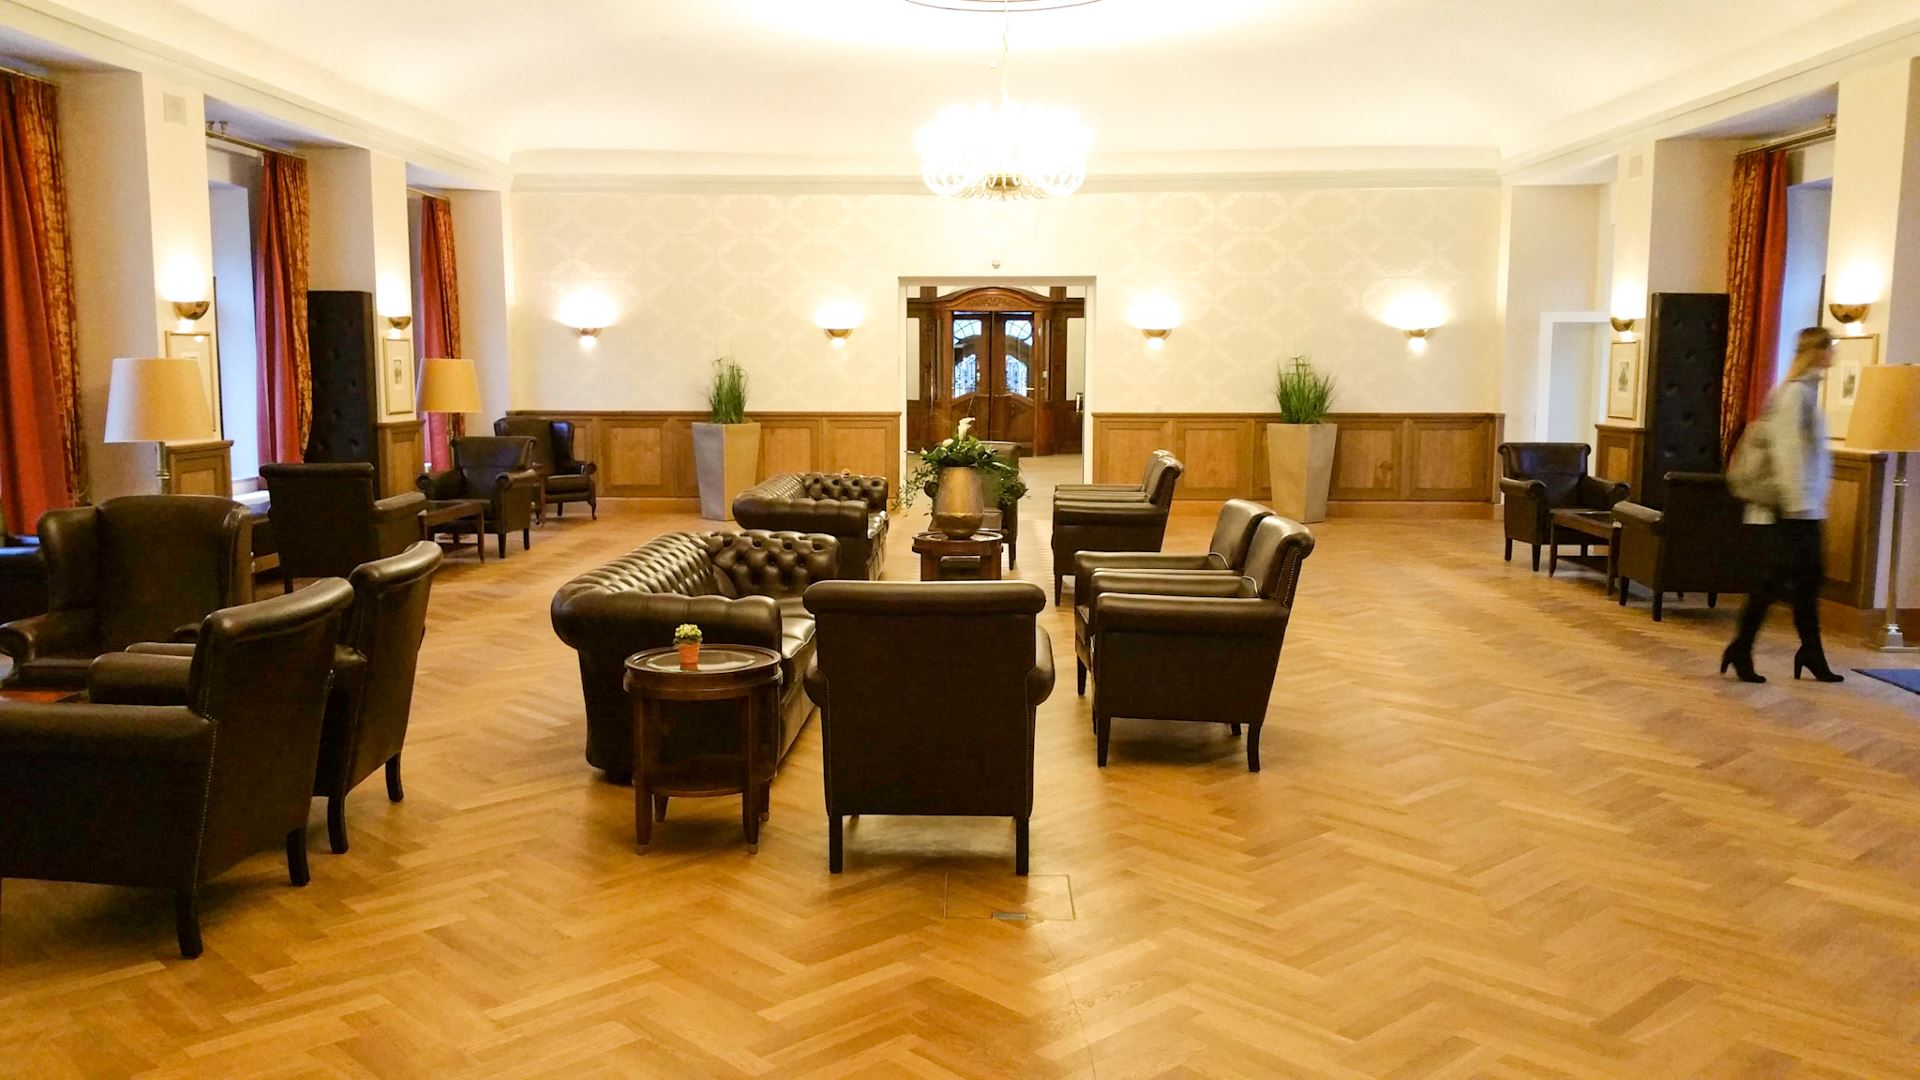 Dorint Hotel - Heiraten in Bad Brückenau